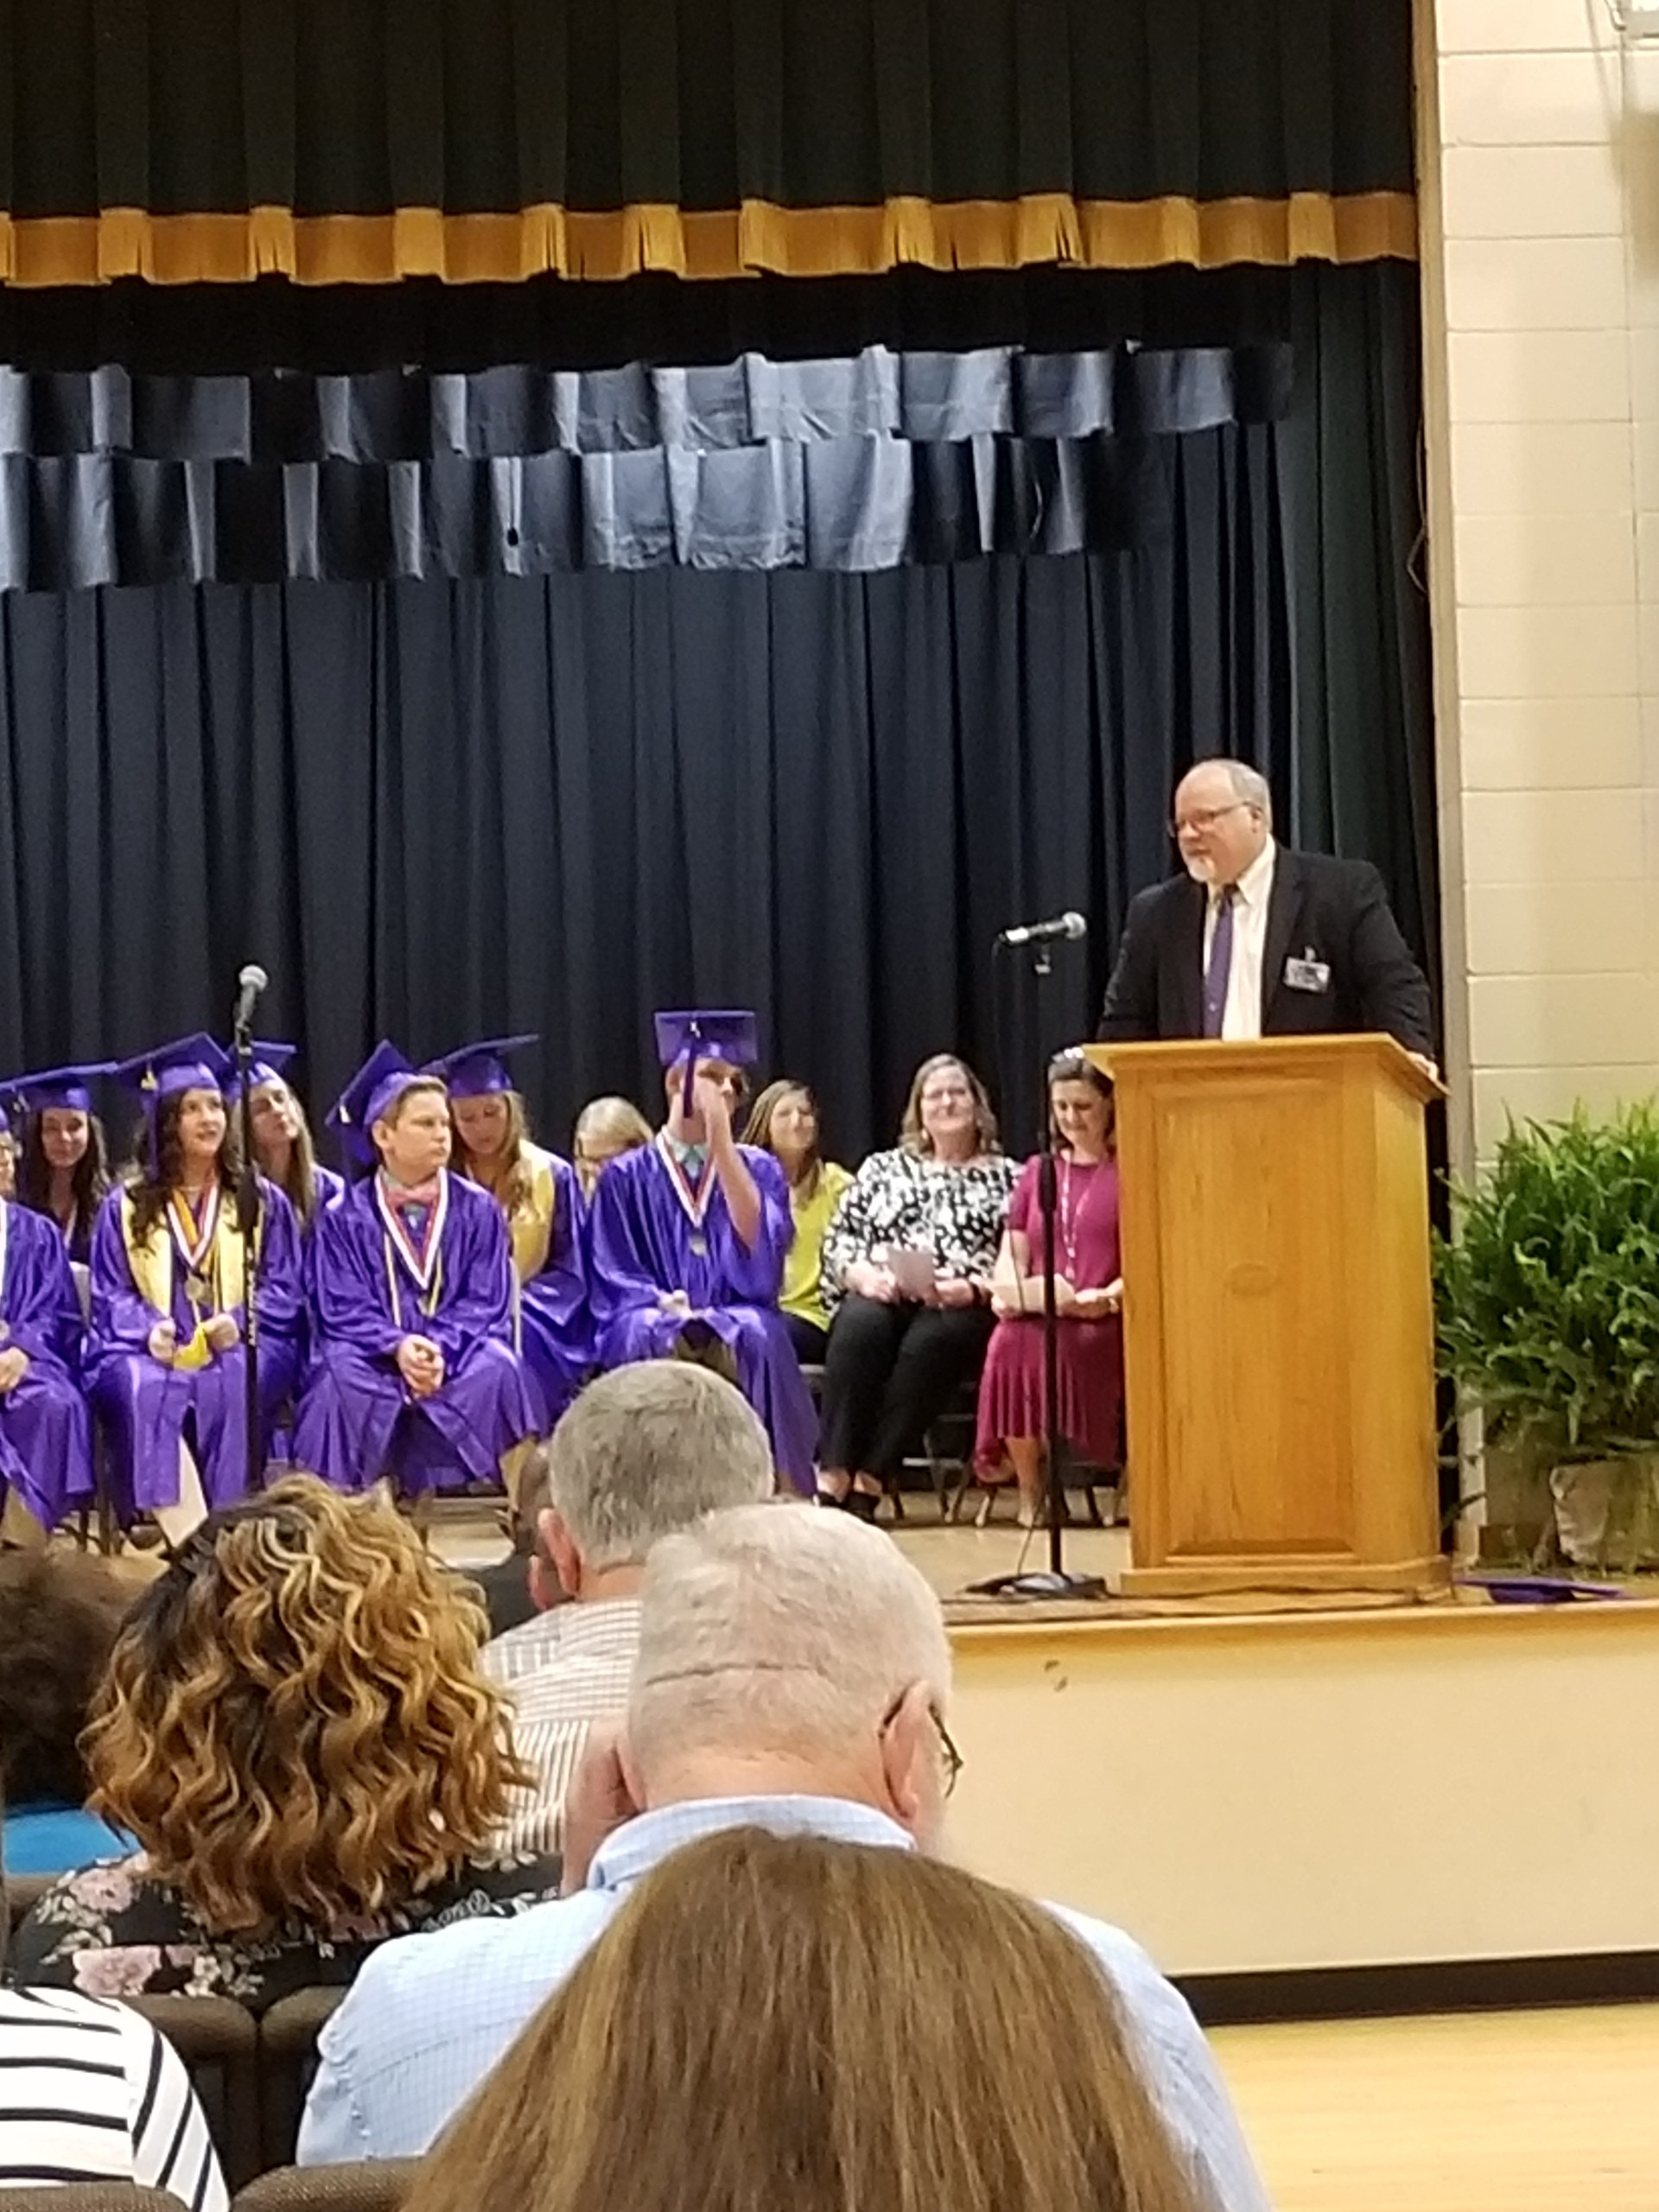 Mr. McGee speaks at the Randolph Elementary 2018 6th grade graduation